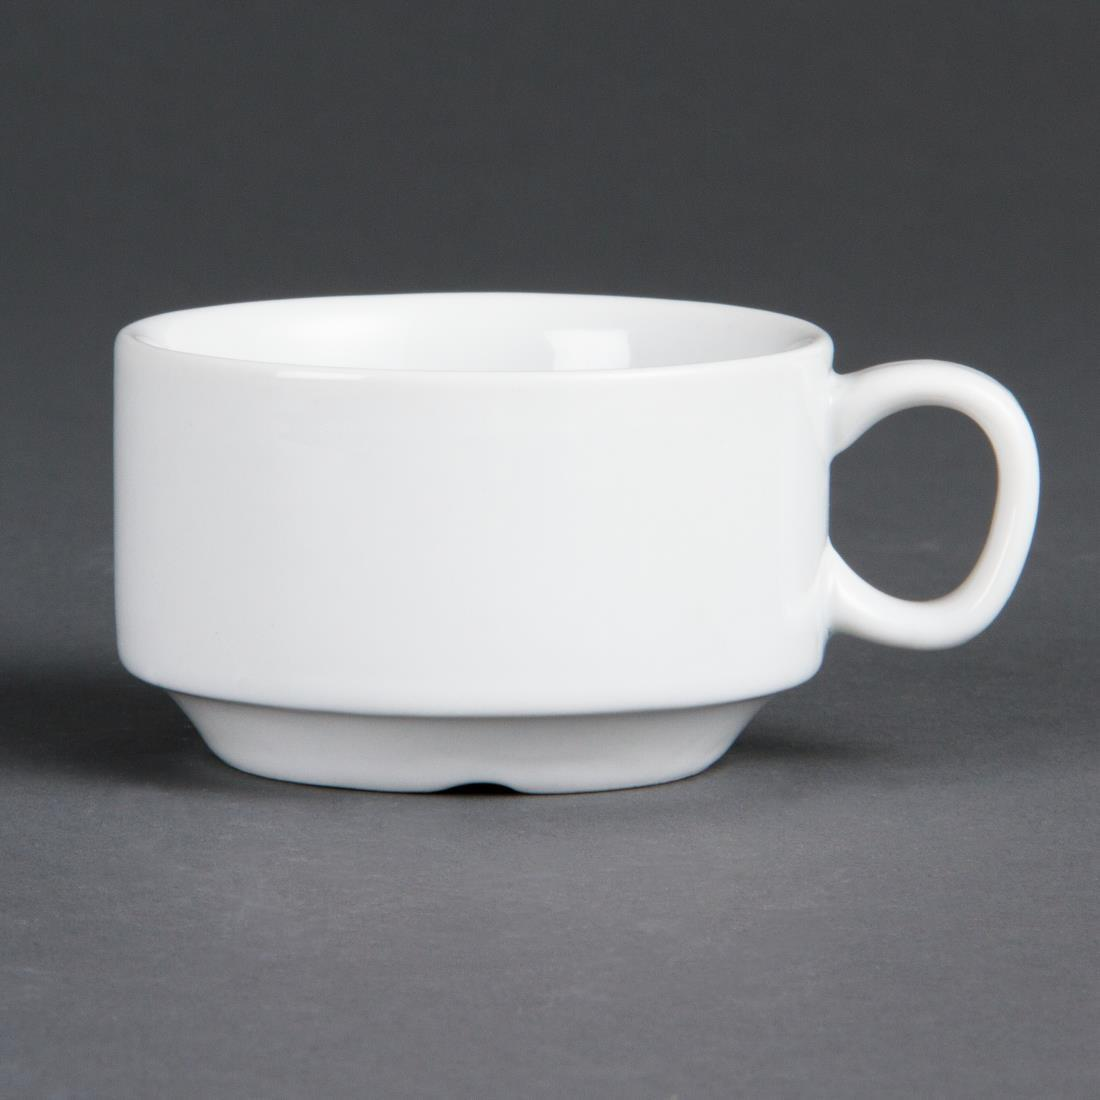 Olympia Whiteware Stacking Espresso Cups 85ml 3oz